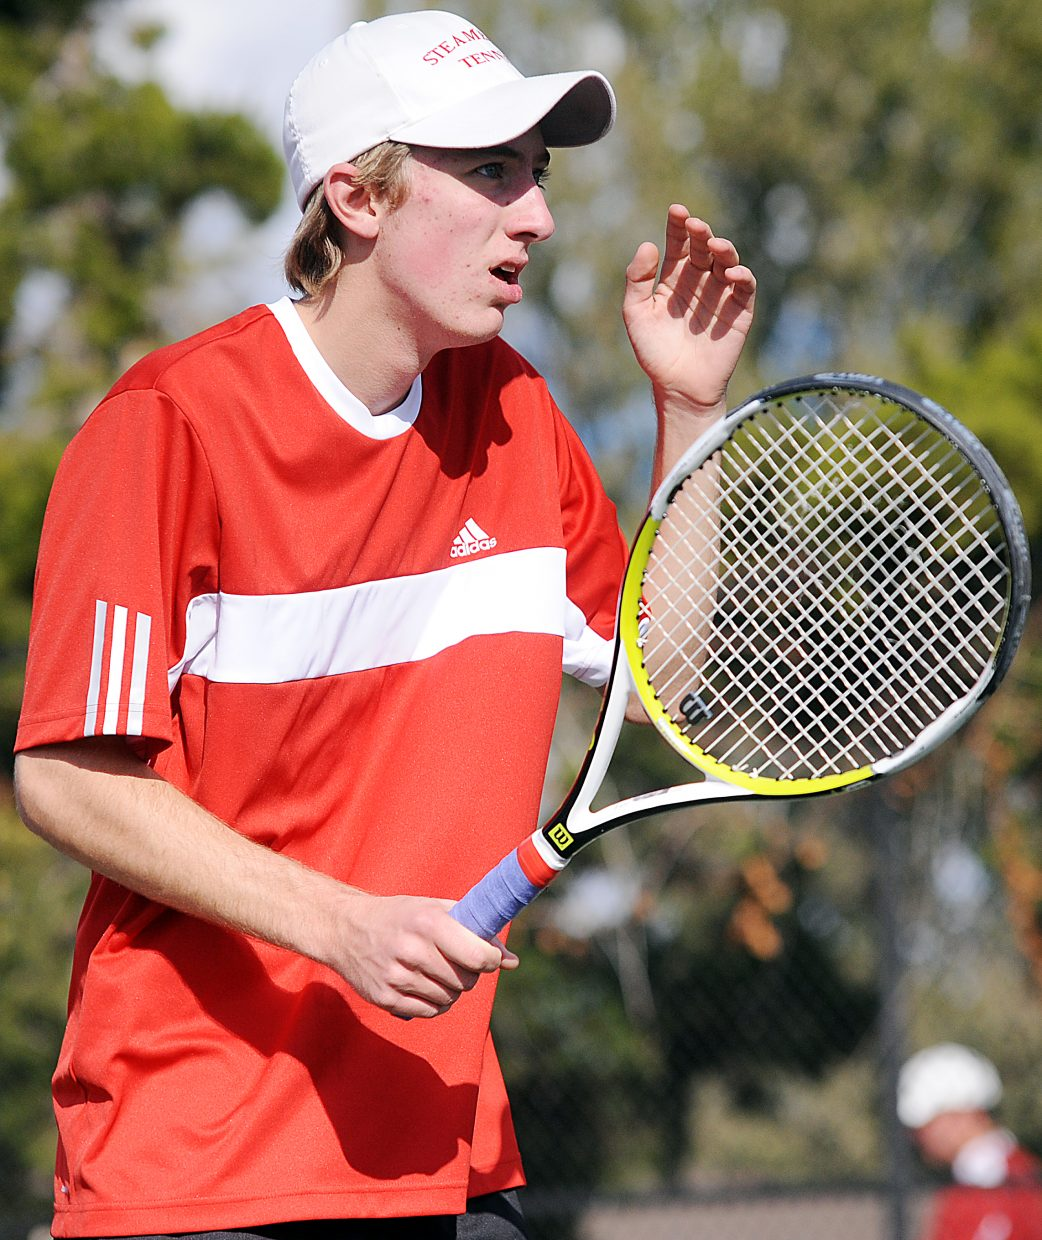 Steamboat senior Jeff Lambart reacts after a shot Thursday at the state tennis tournament in Pueblo. Lambart and Jack Burger, the No. 1 doubles team, lost in three sets in the quarterfinals.